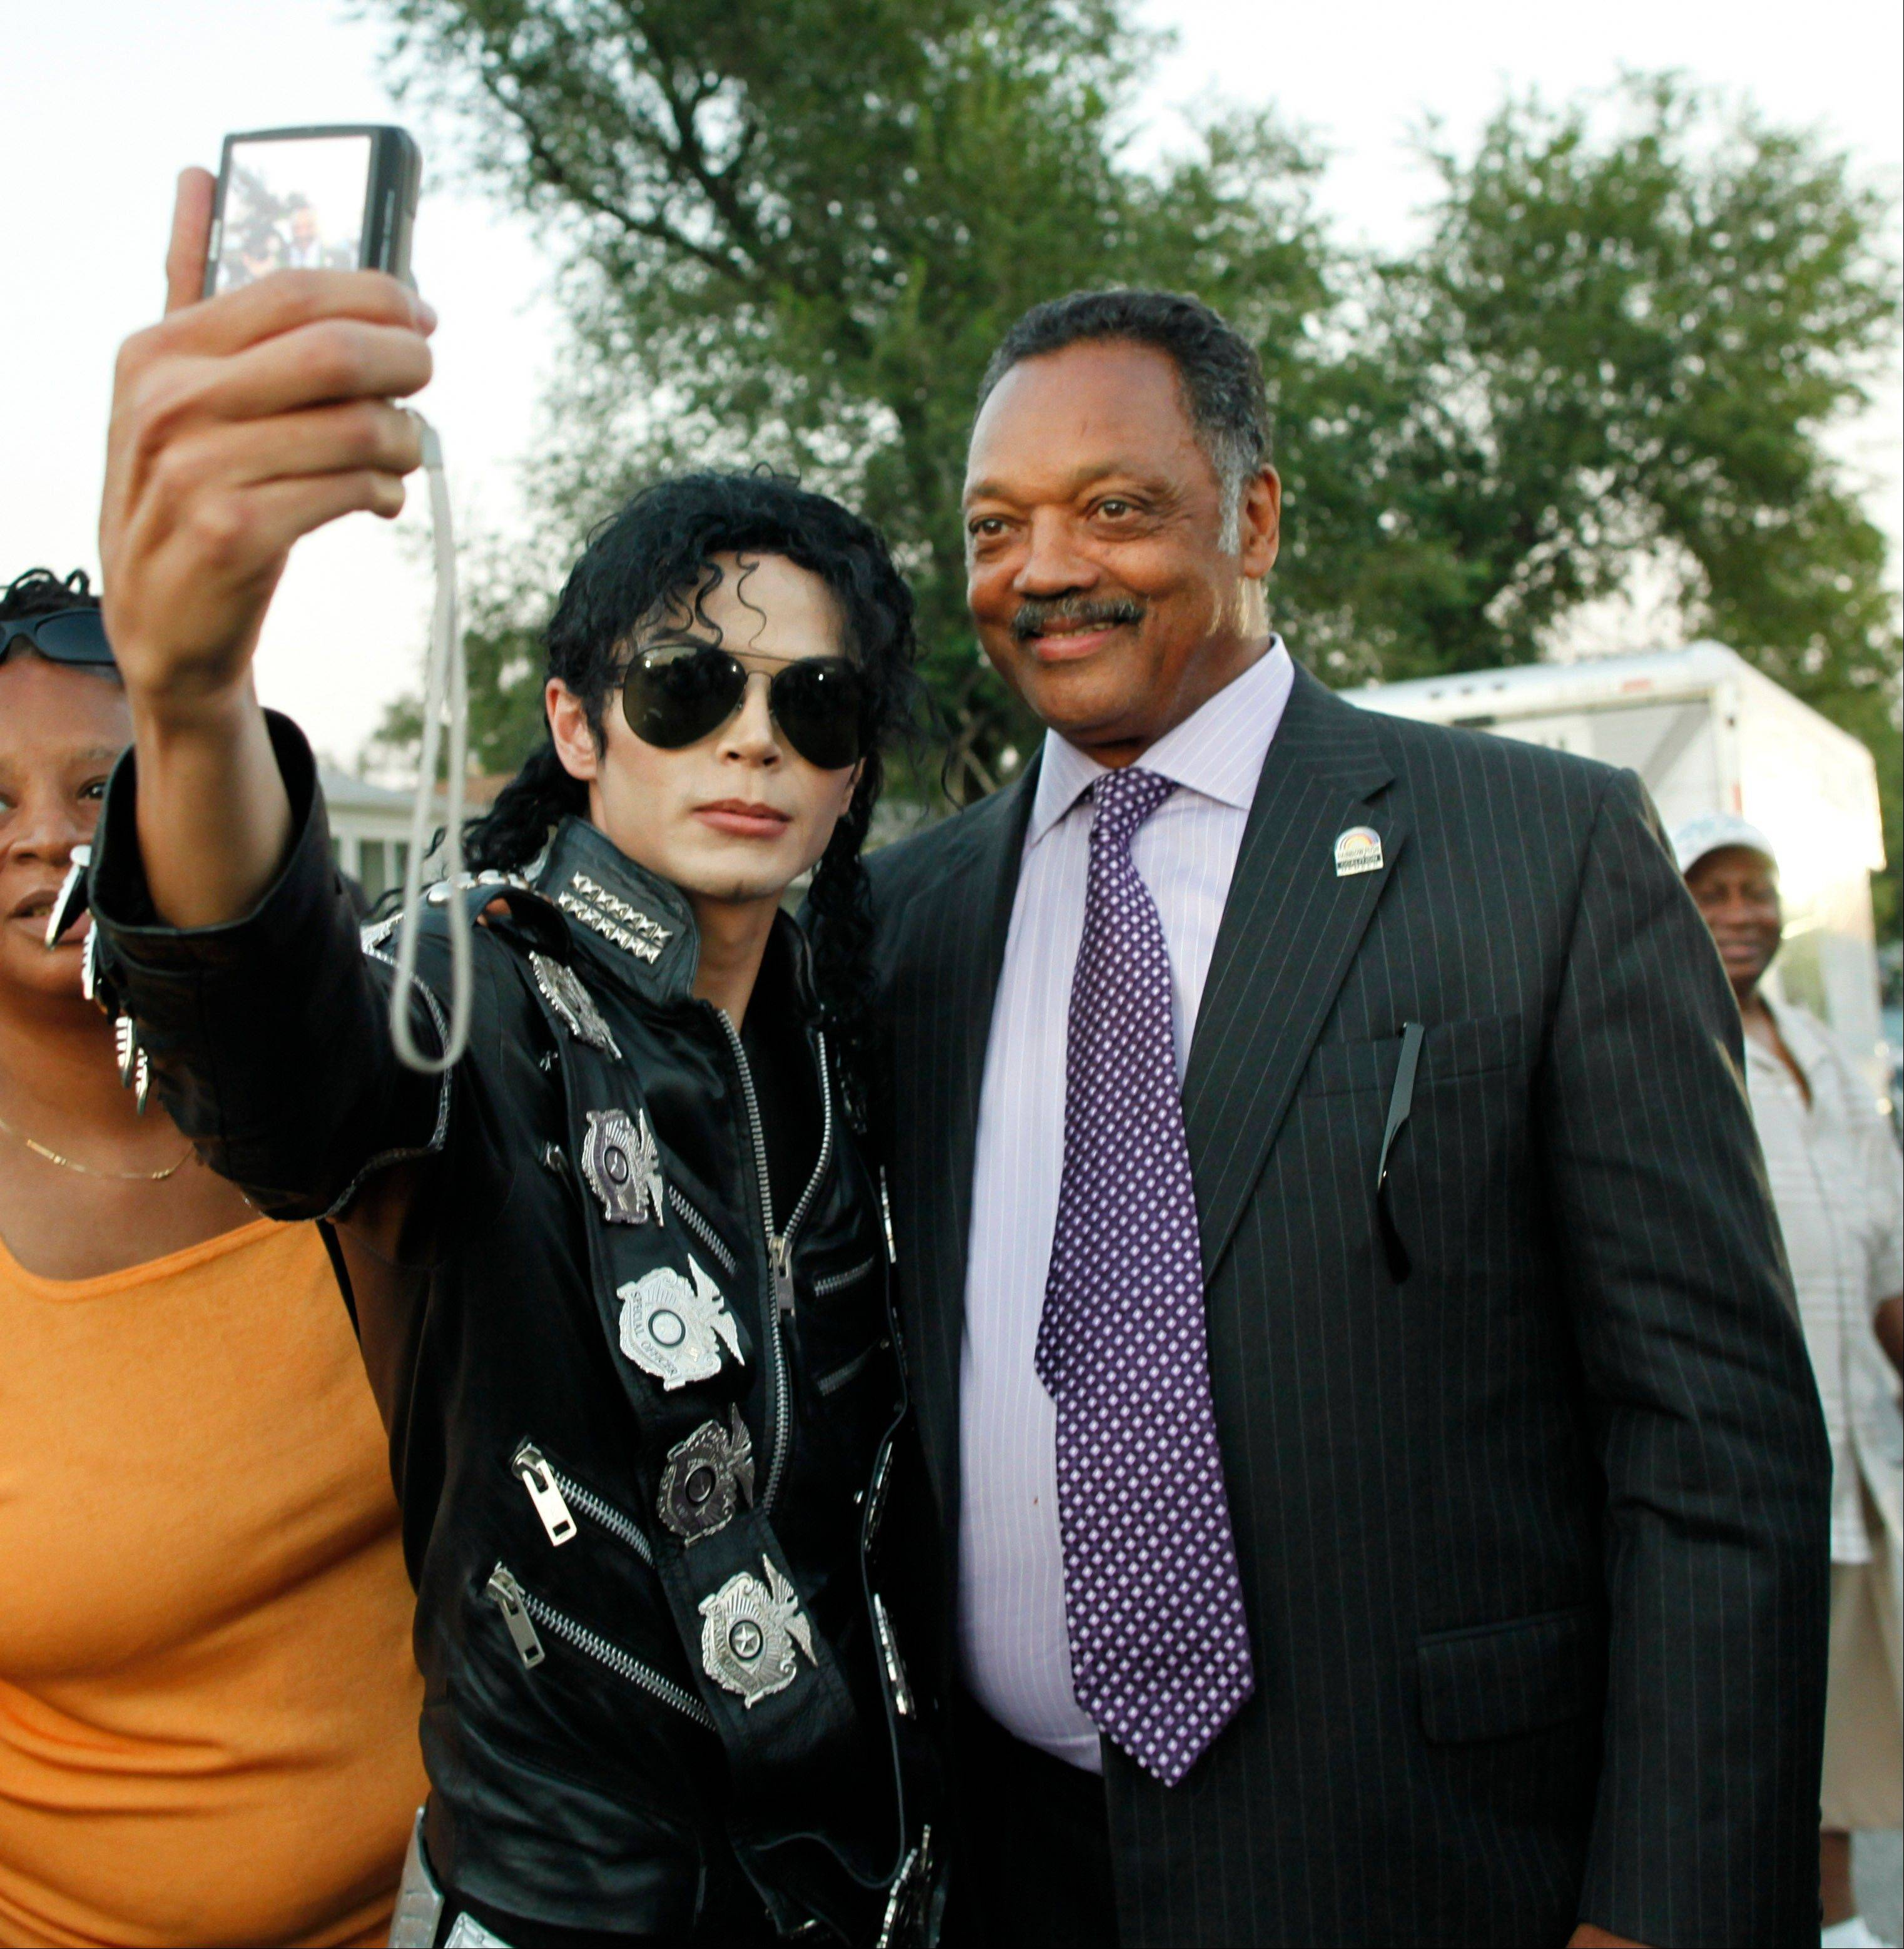 Michael Jackson impersonator Carlo Riley from Denver poses with Rev. Jesse Jackson near Michael Jackson's boyhood home in Gary, Ind., during a celebration marking what would have been Jackson's 54th birthday Wednesday.